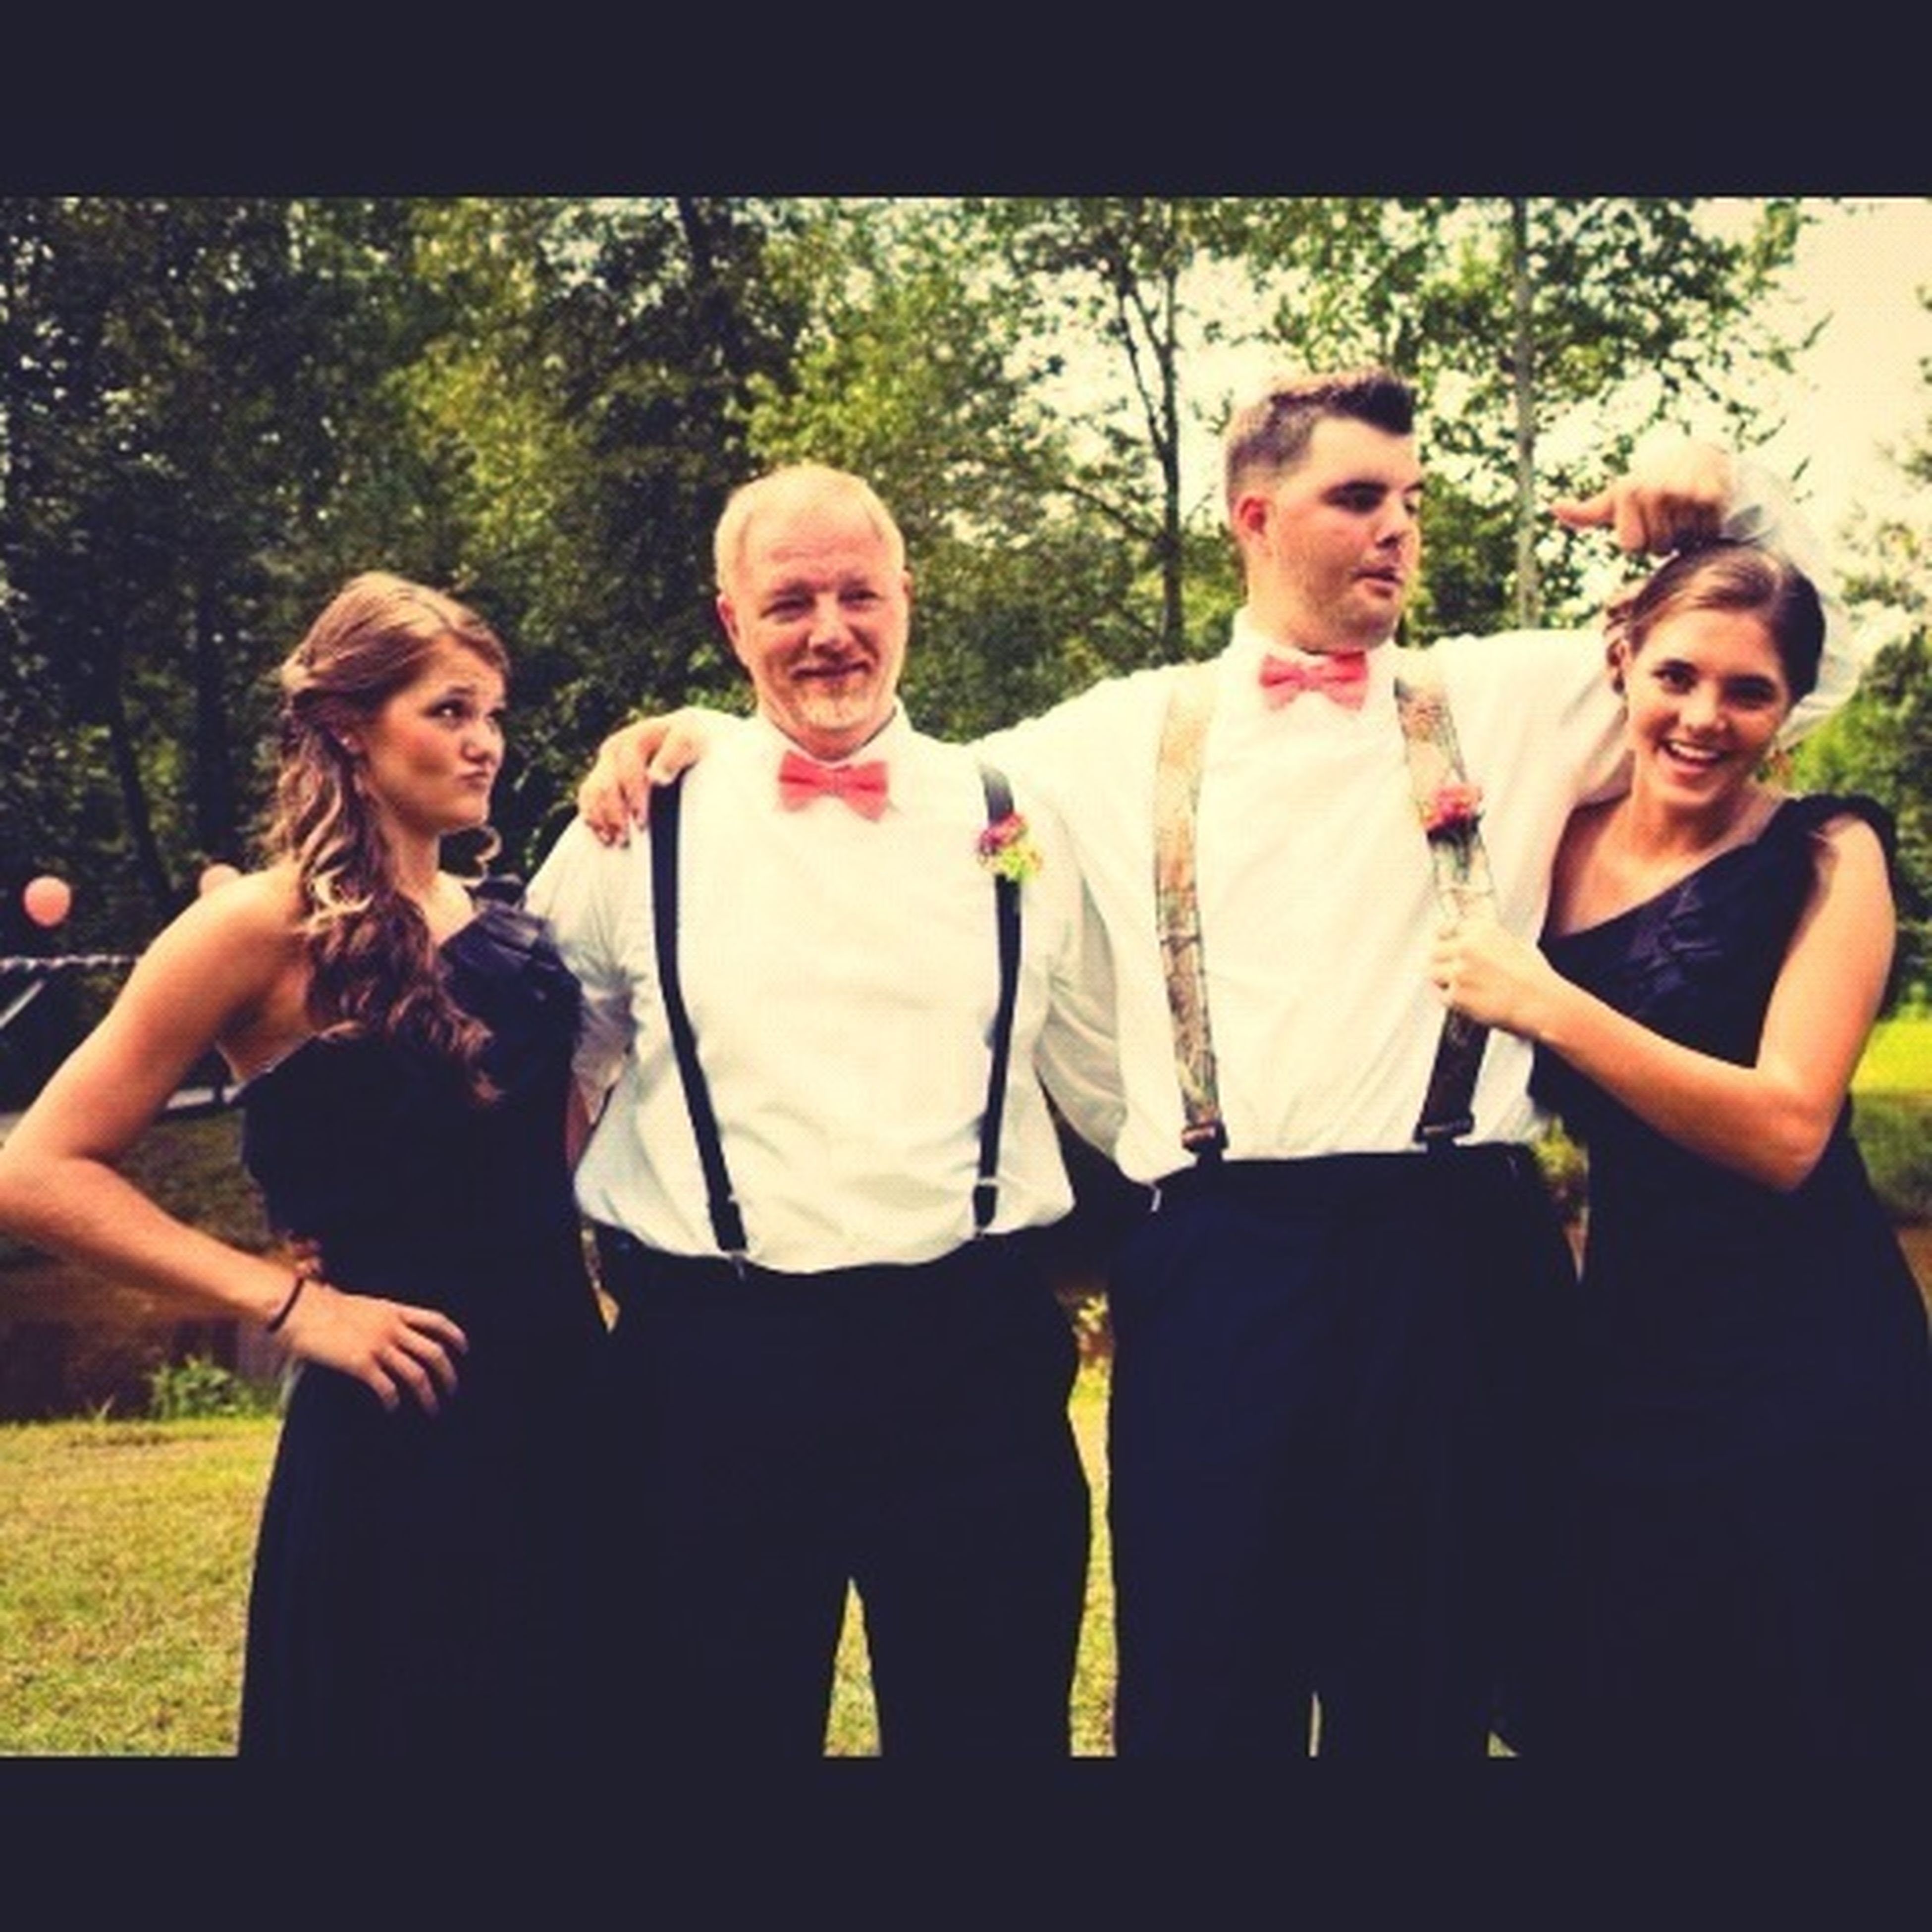 Favorite Family Pictureee! ☺